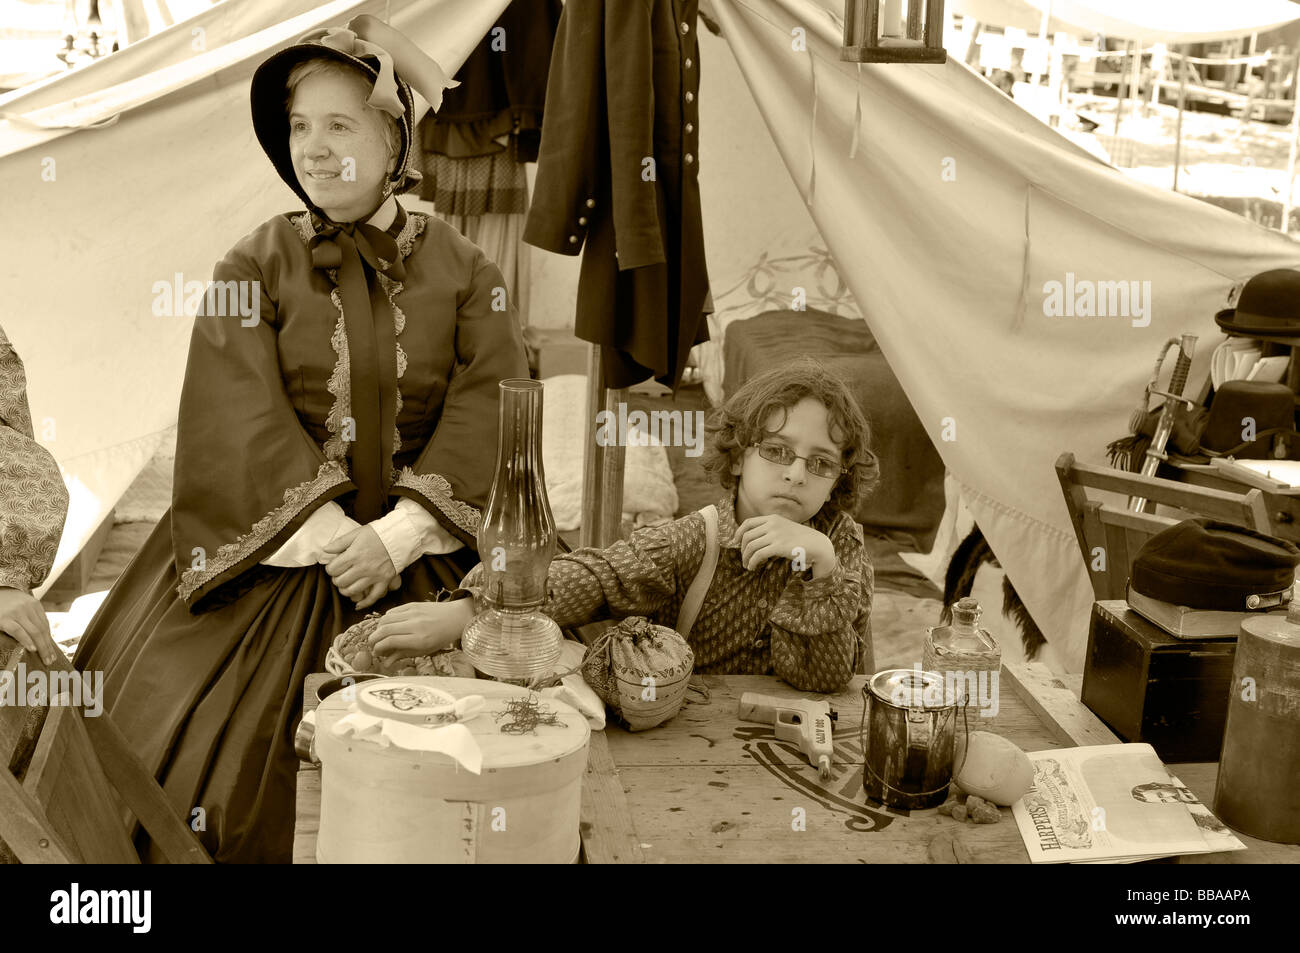 Civil War Family - encampment re-creation - a woman and child at the dinner table next to a tent. Sepia tones. Stock Photo